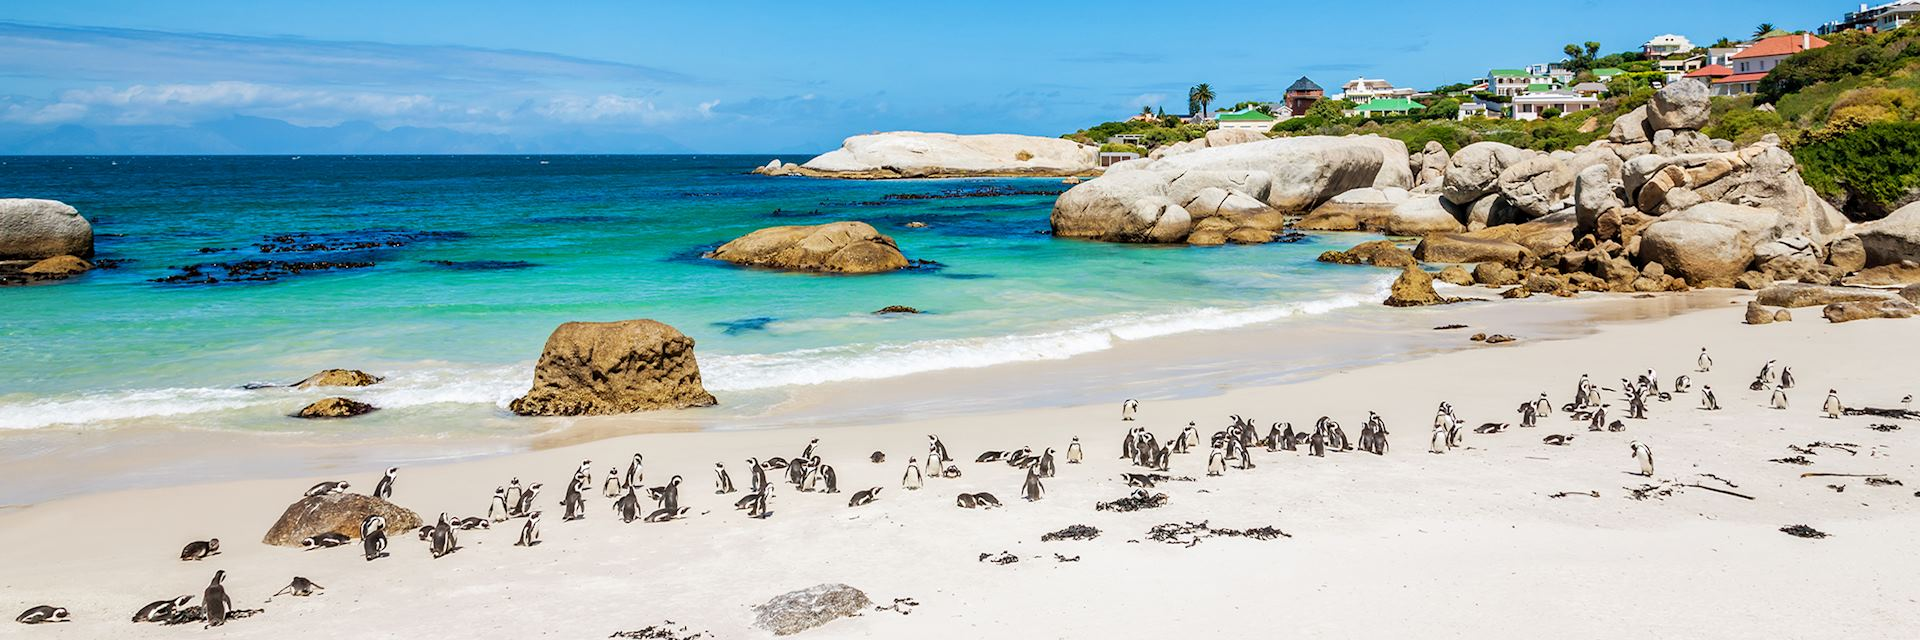 Penguins at Boulders Beach, Cape Town, South Africa